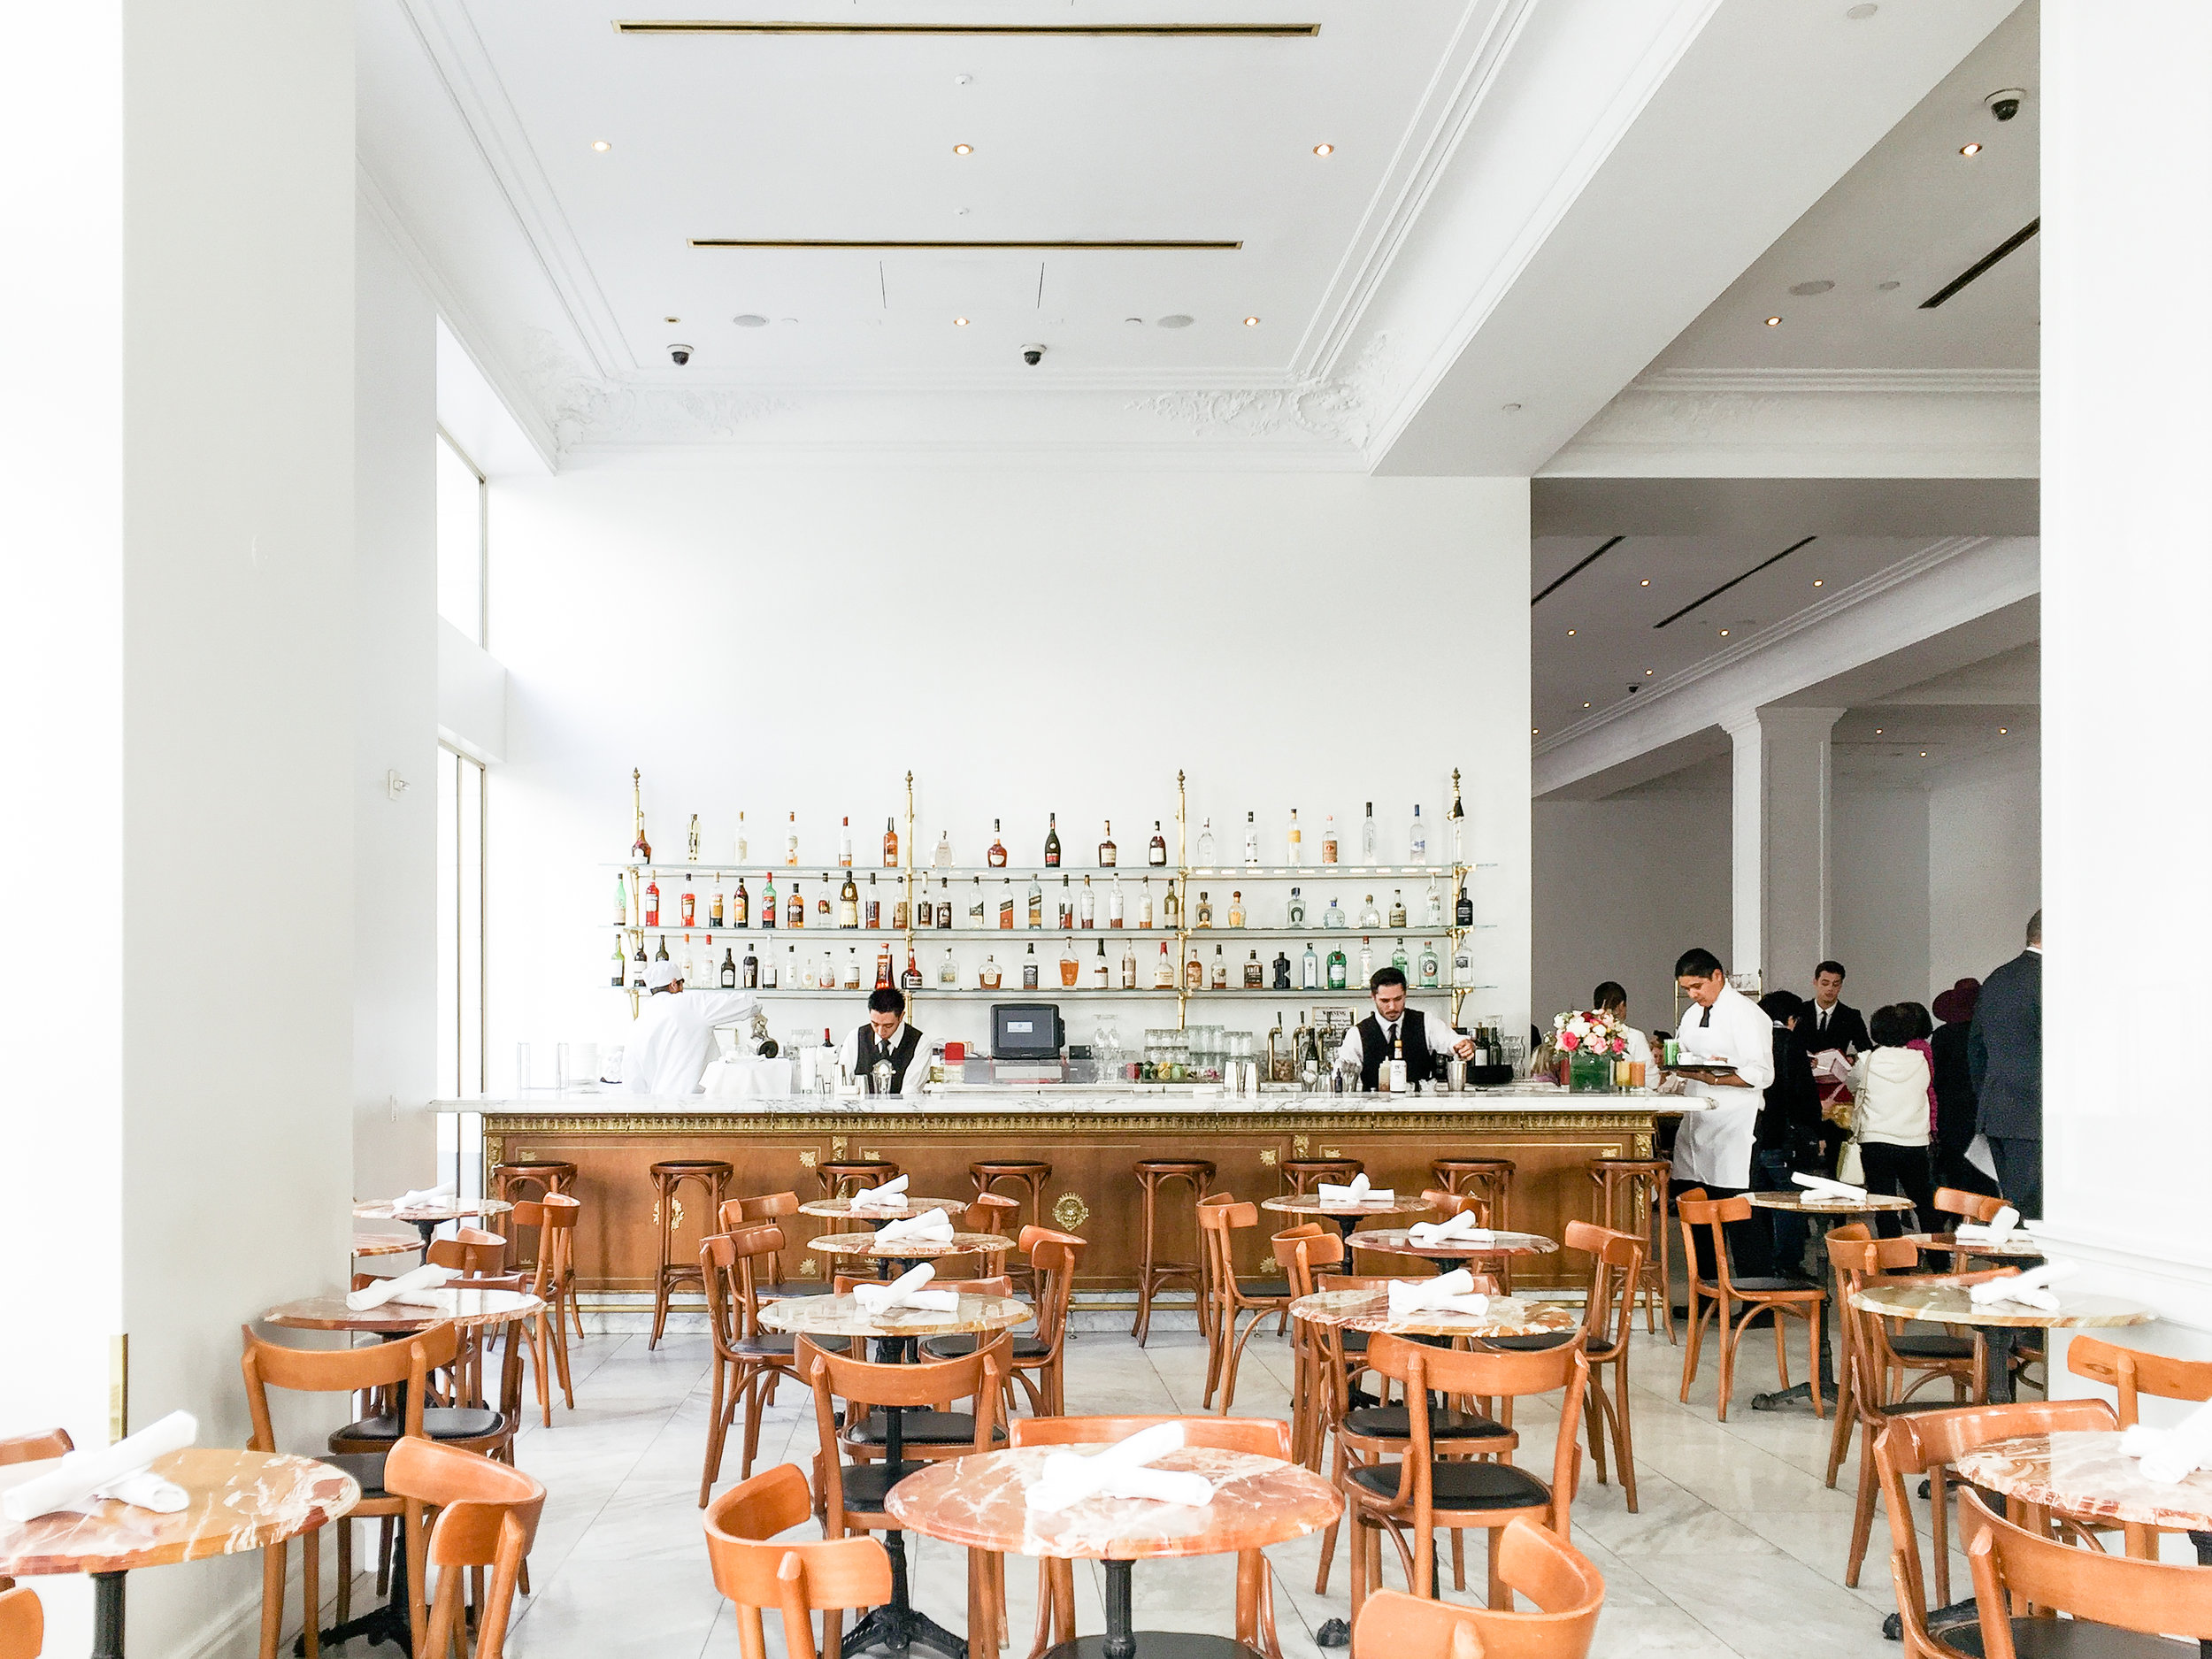 bottega-louie-restaurant